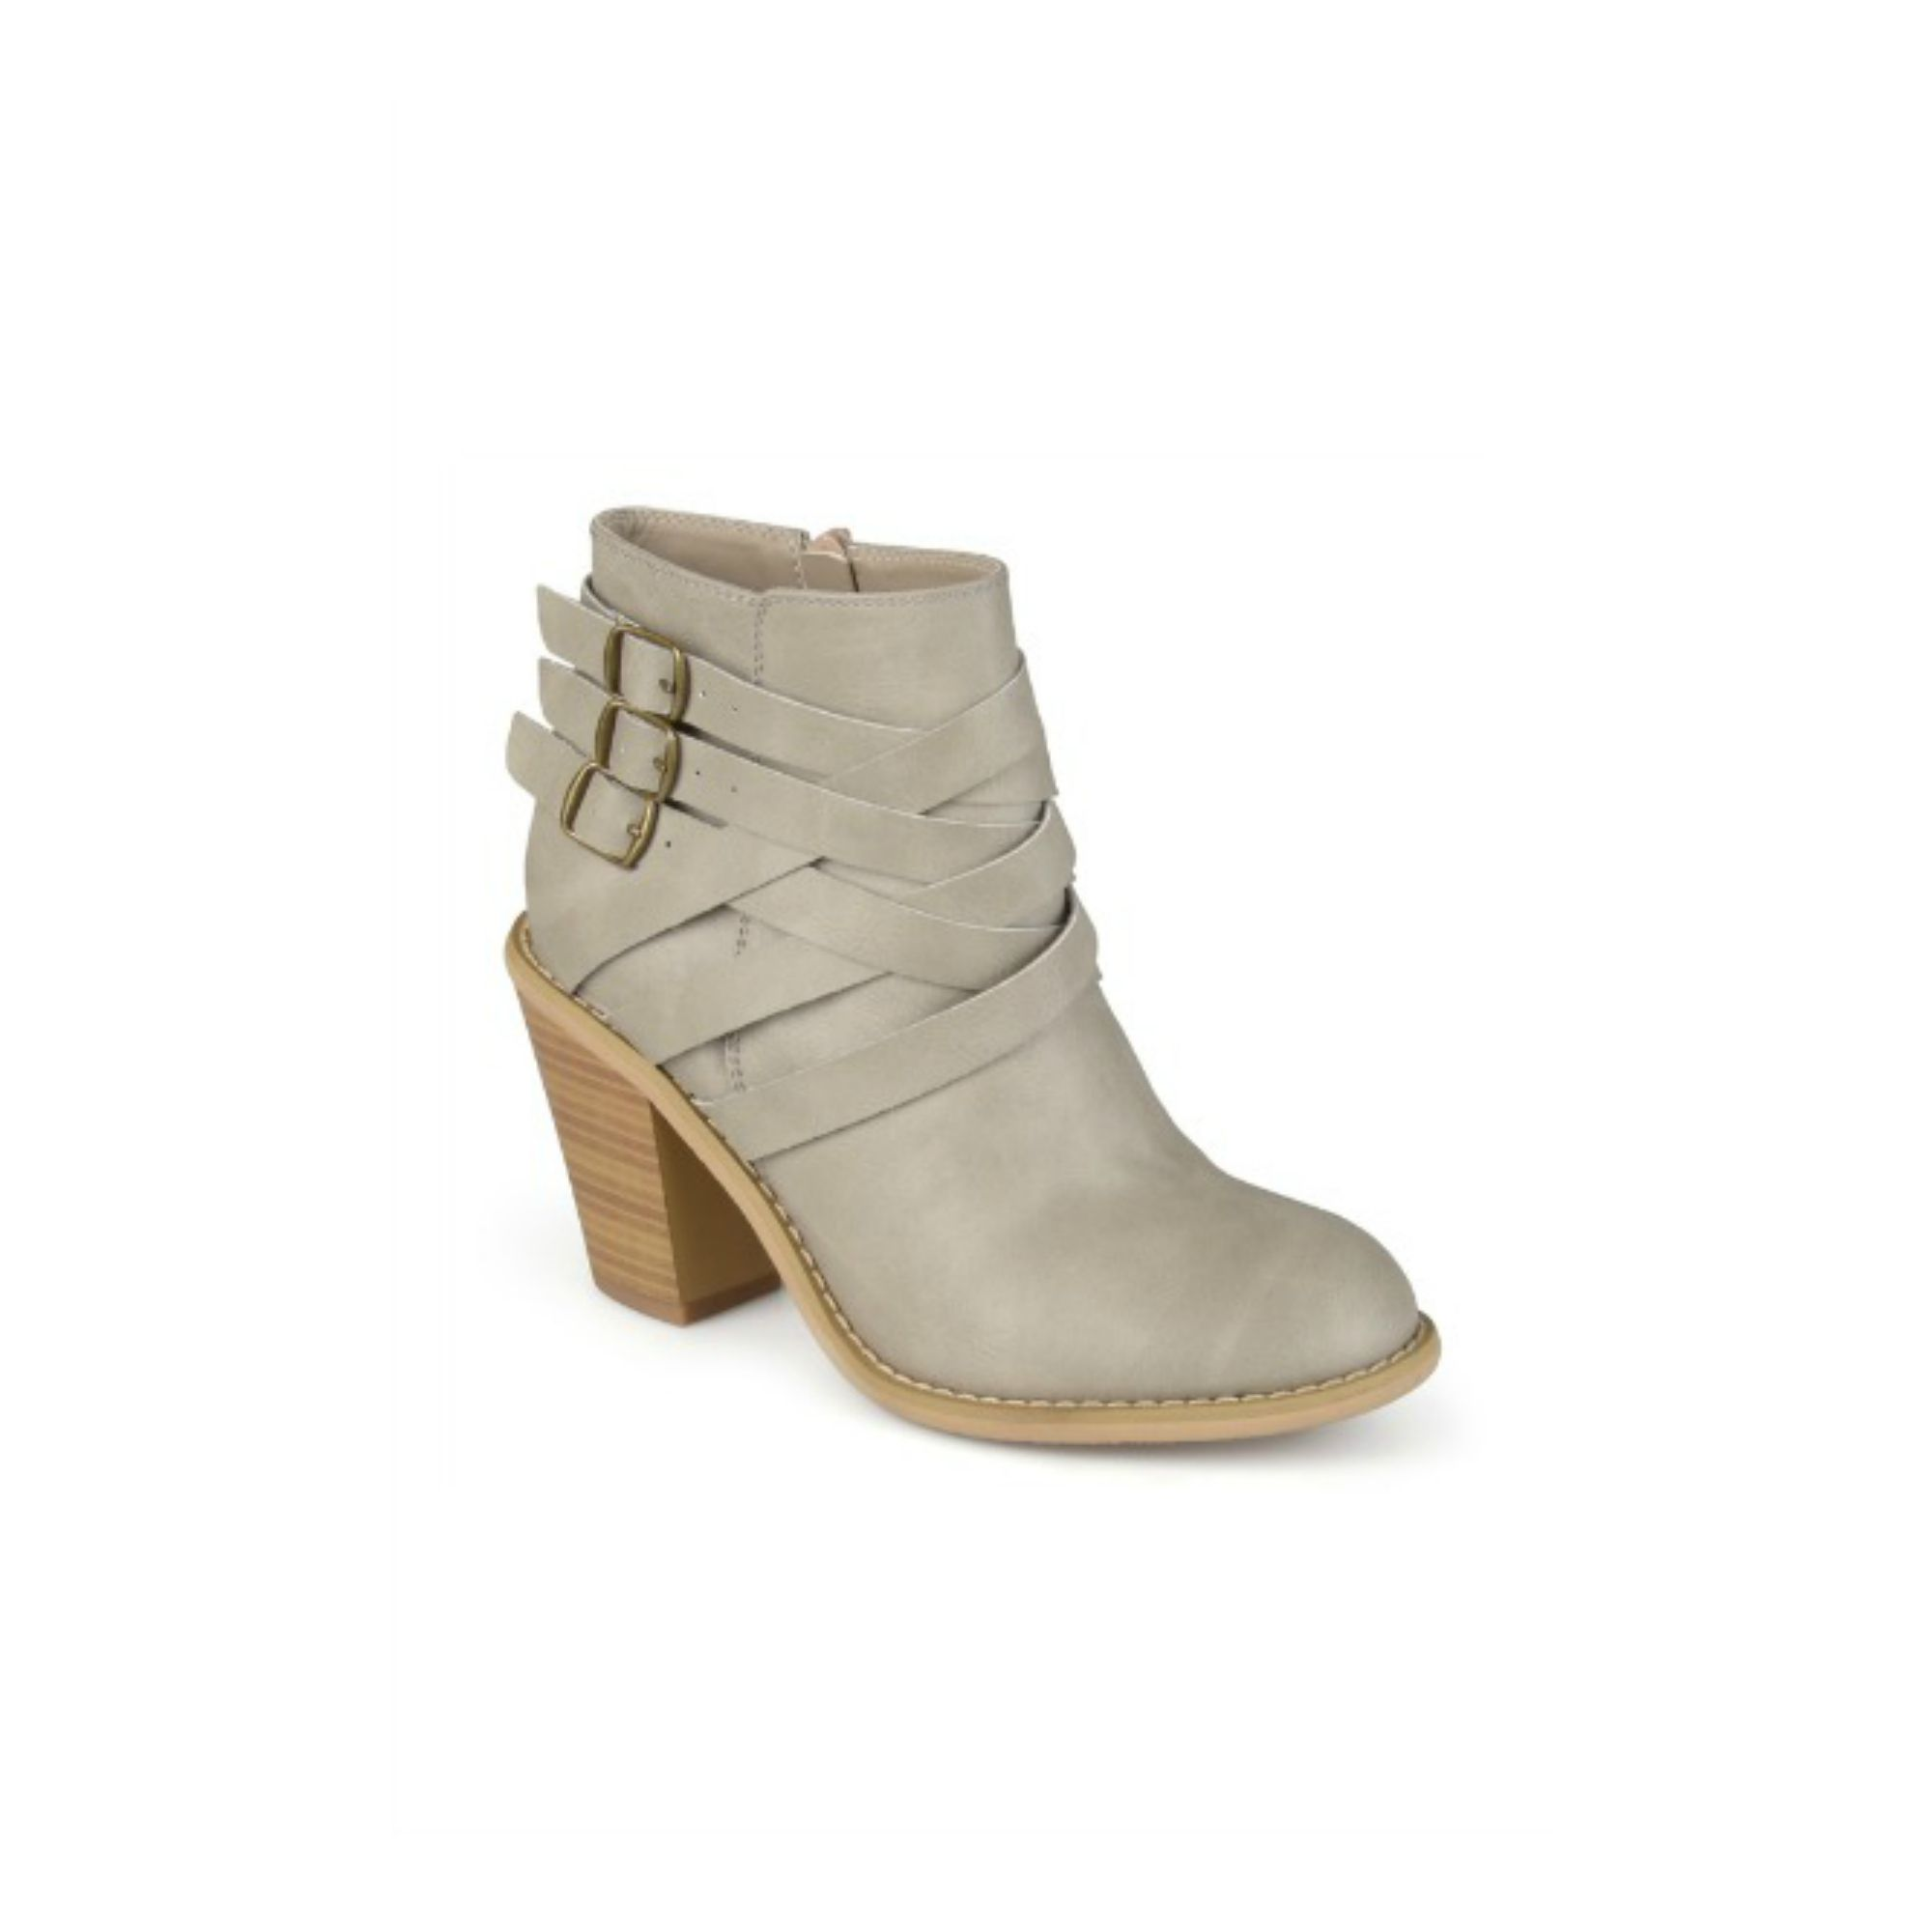 results comfortable microfiber these casual step booties boots and made comforter are all ruched this what suede do for just in feet search s with skechers source you walking ll day your the tricky lite on spend that bootie